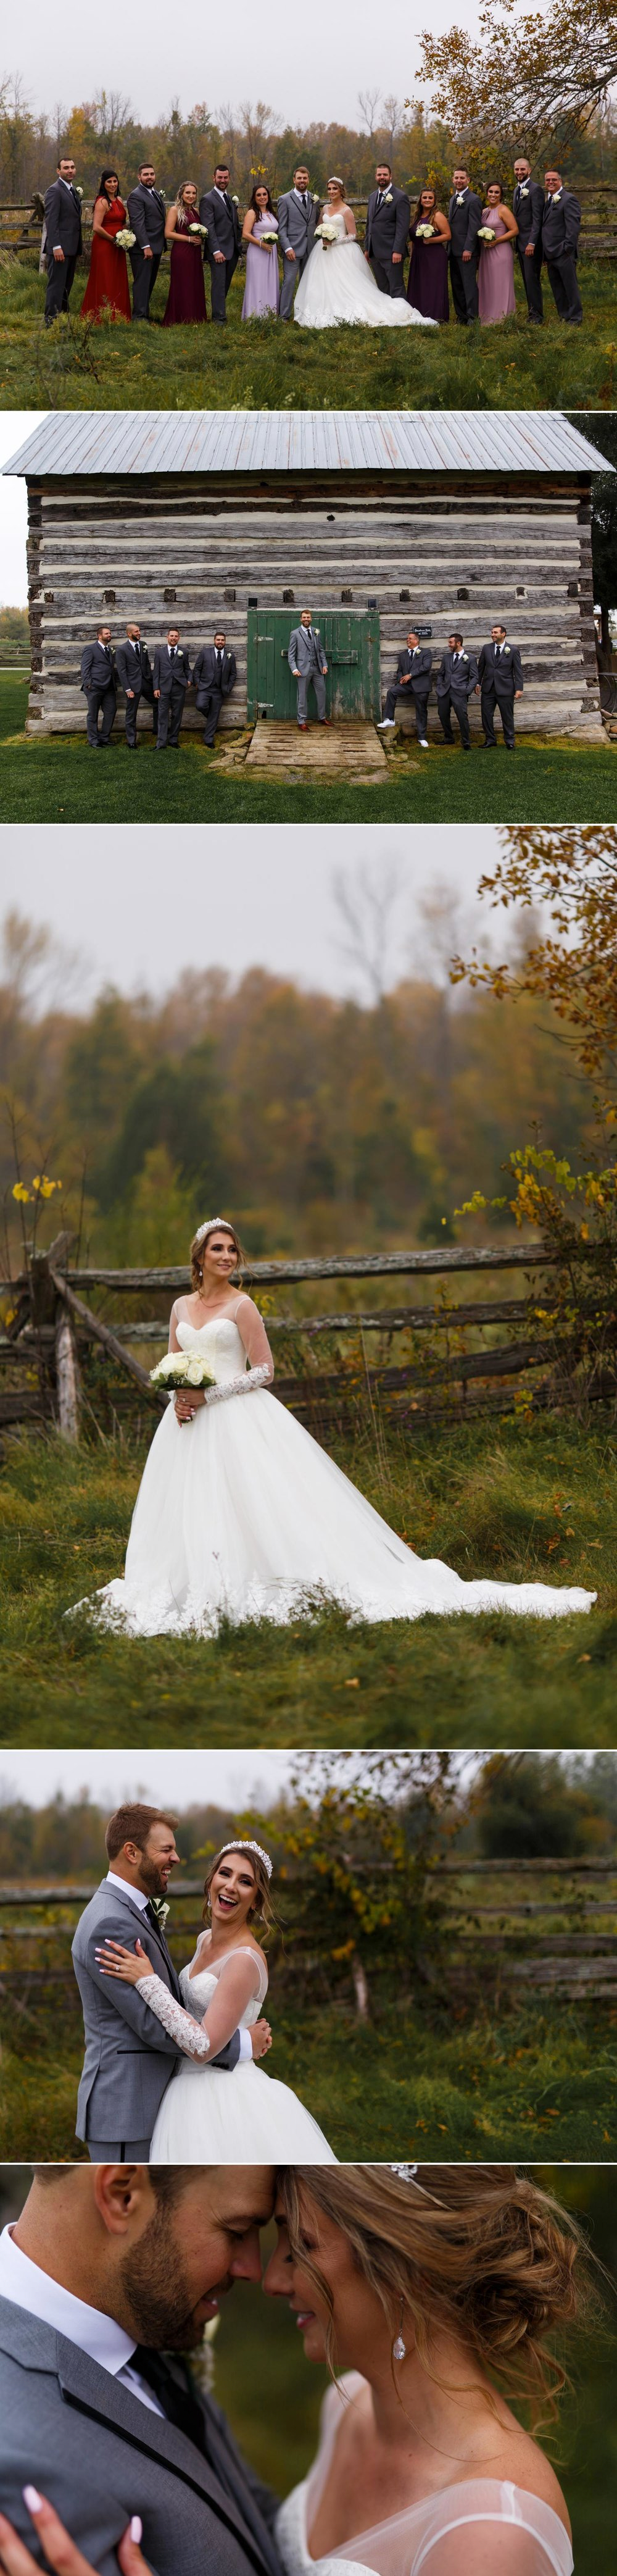 bridal portraits and wedding party portraits